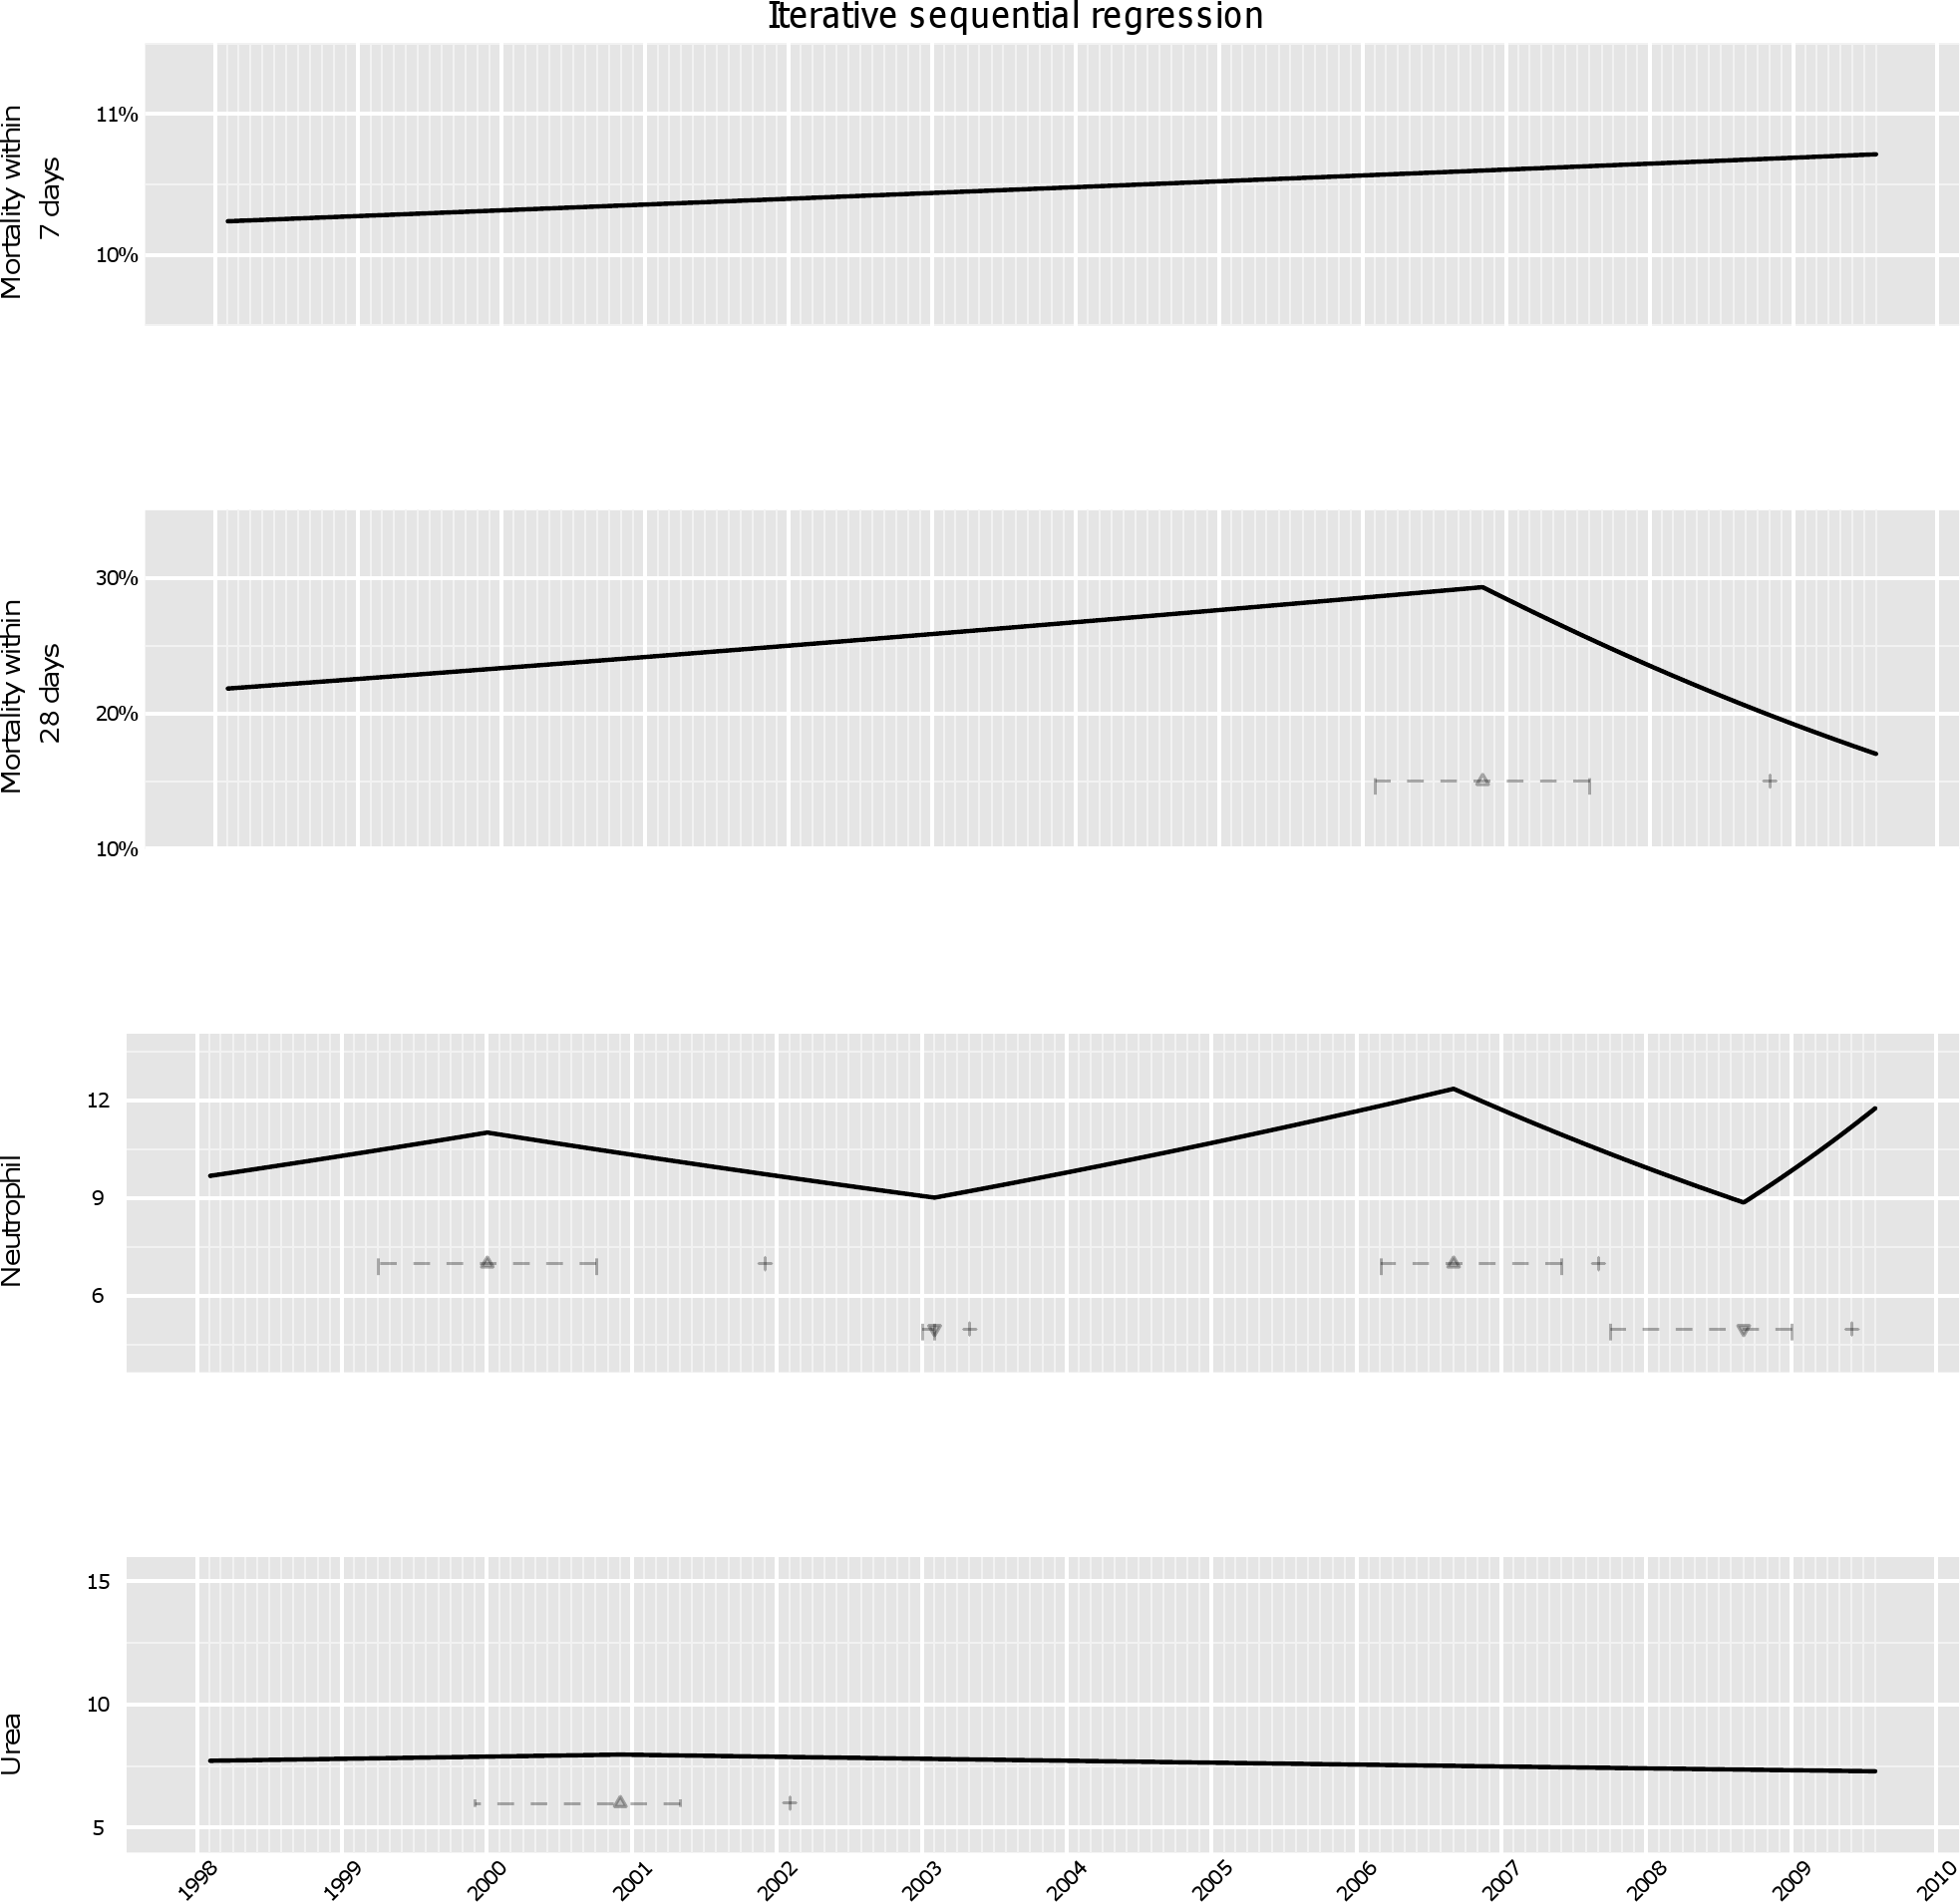 Analysis of secular trends month by month using ISR.